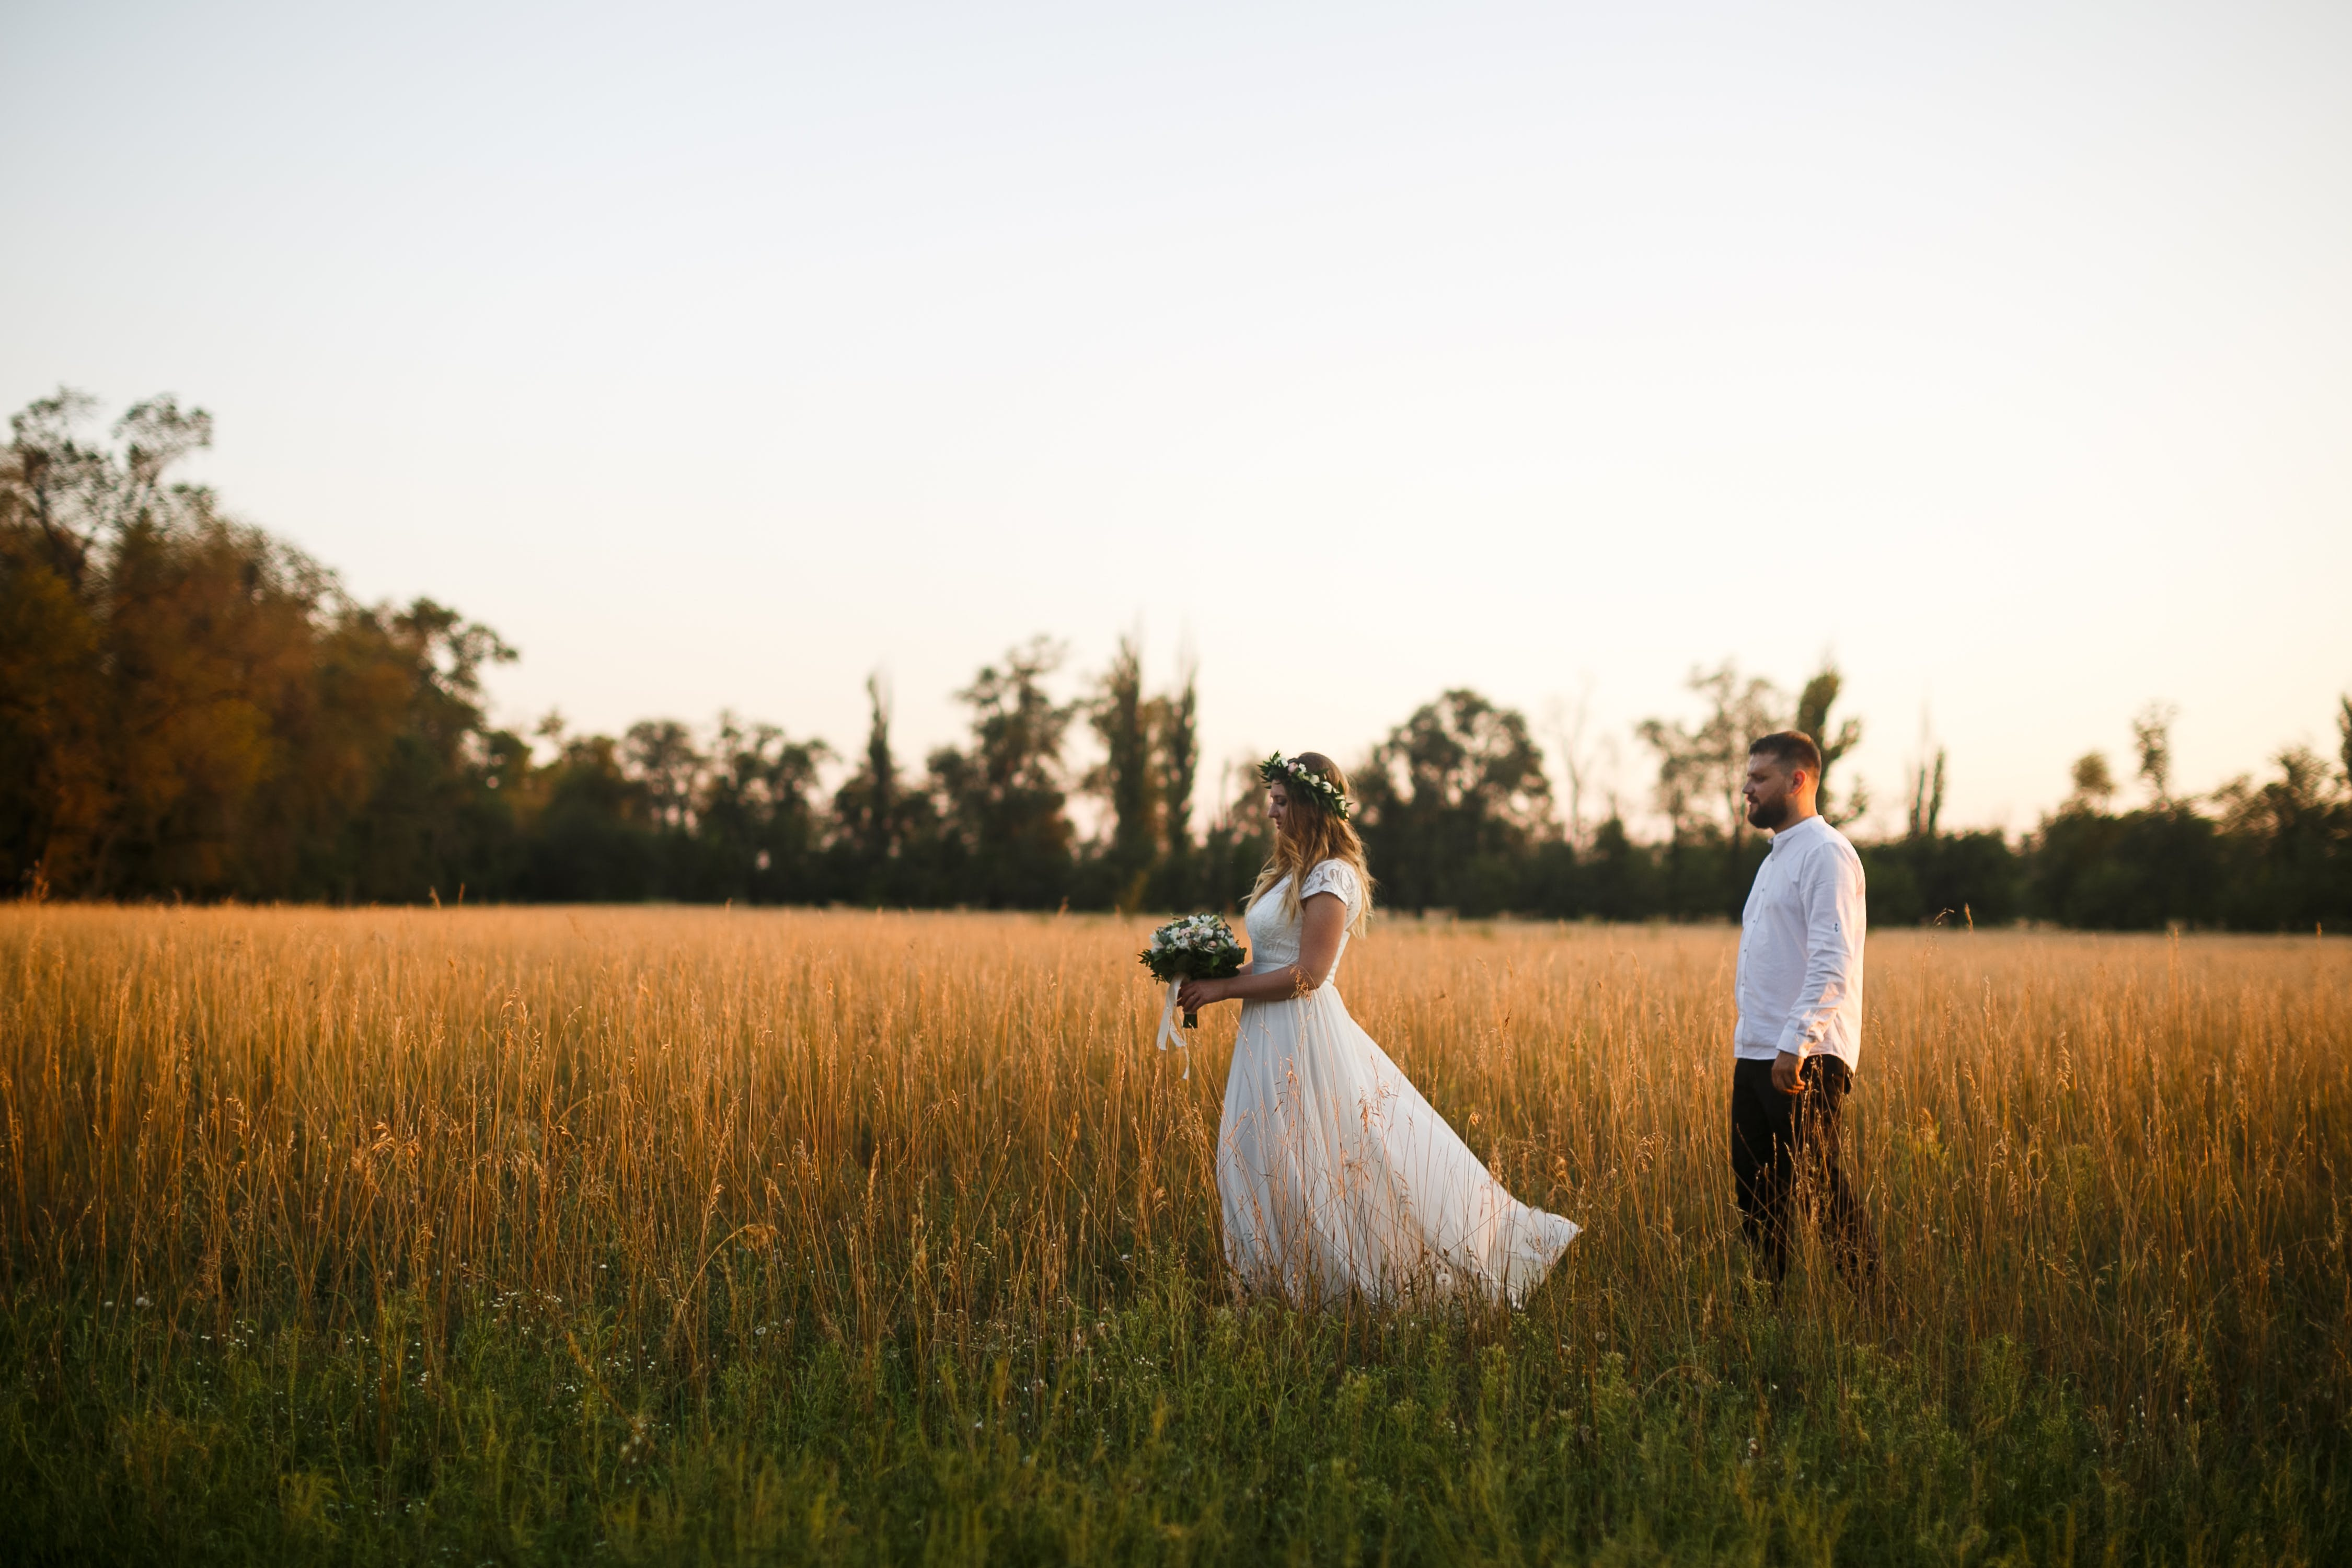 Groom Standing Next to Bride Holding Bouquet of Flower on Grass Field